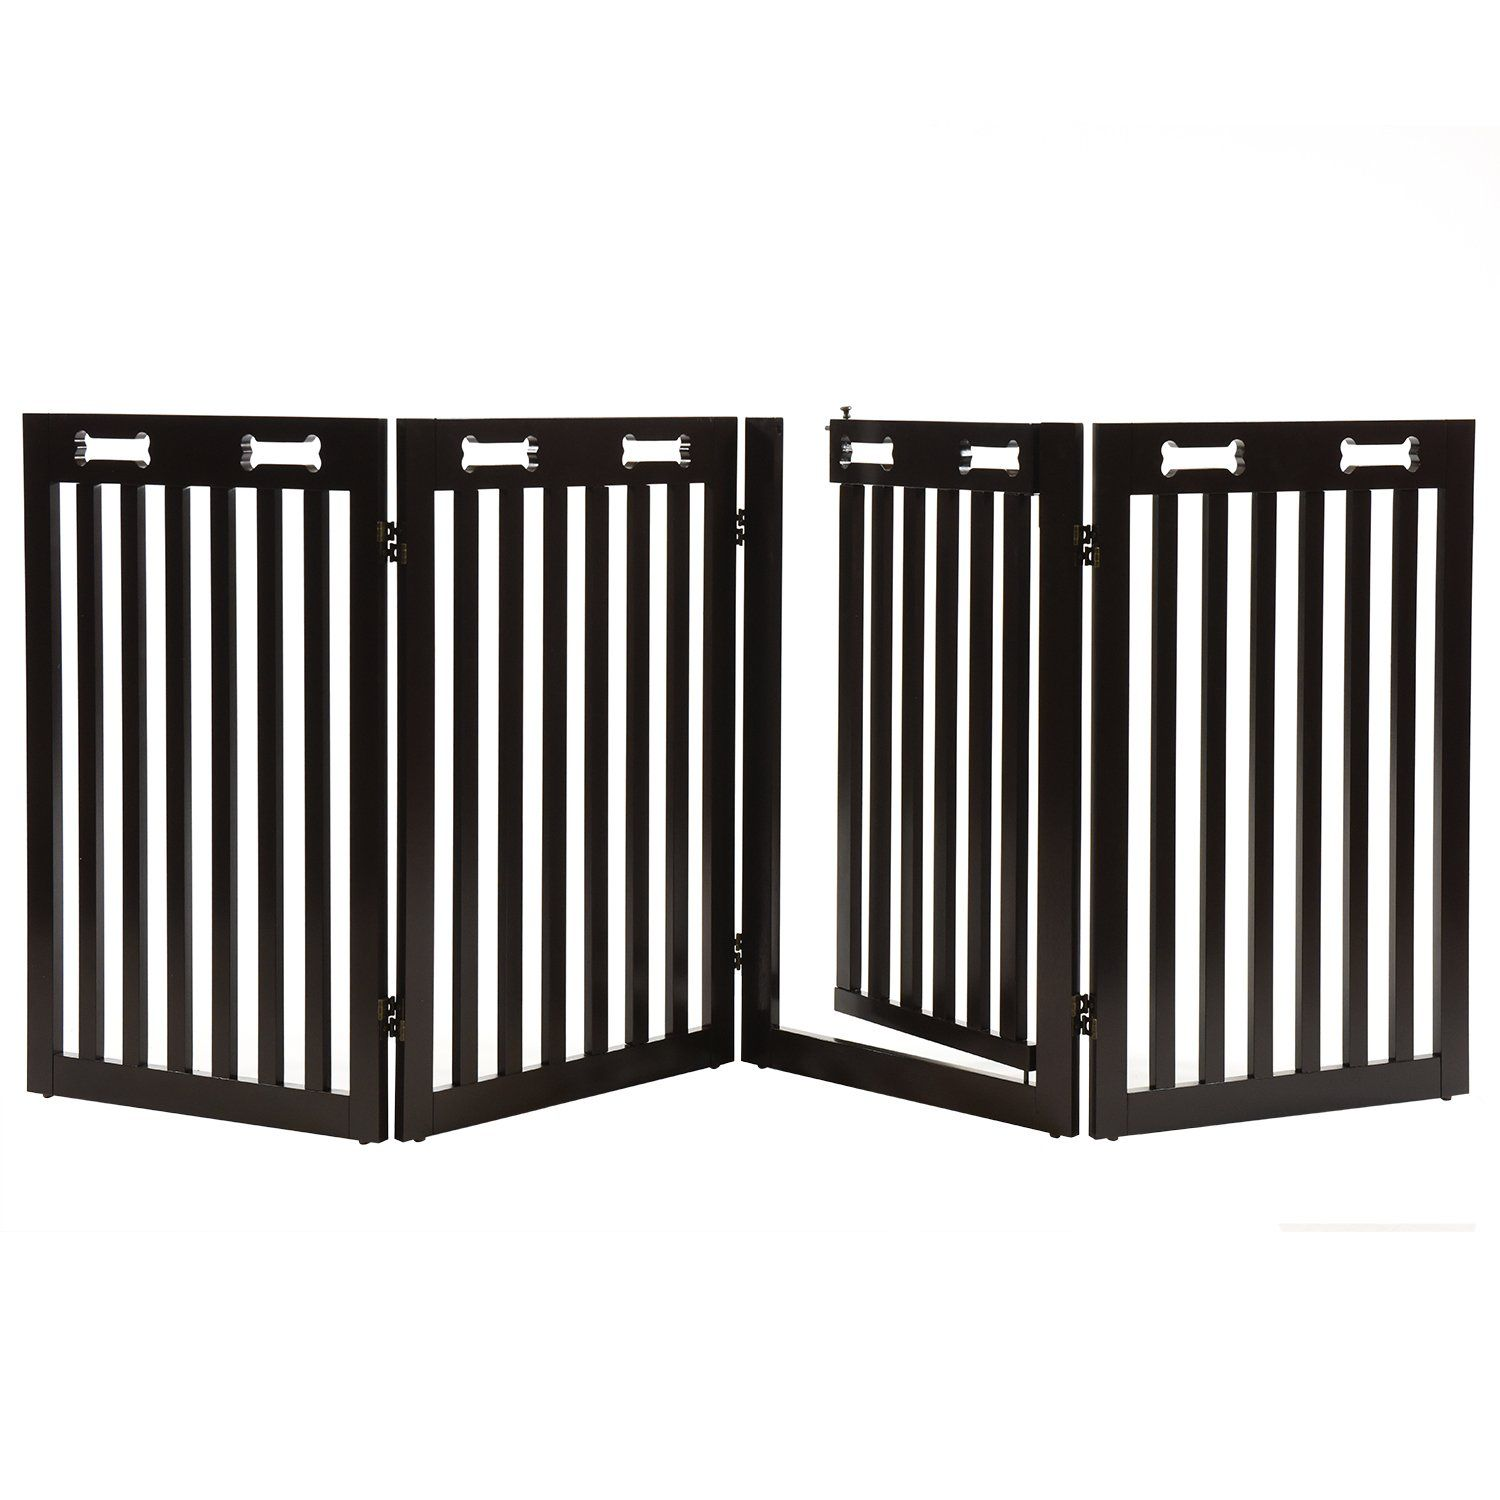 Arf pets free standing wood dog gate with walk through